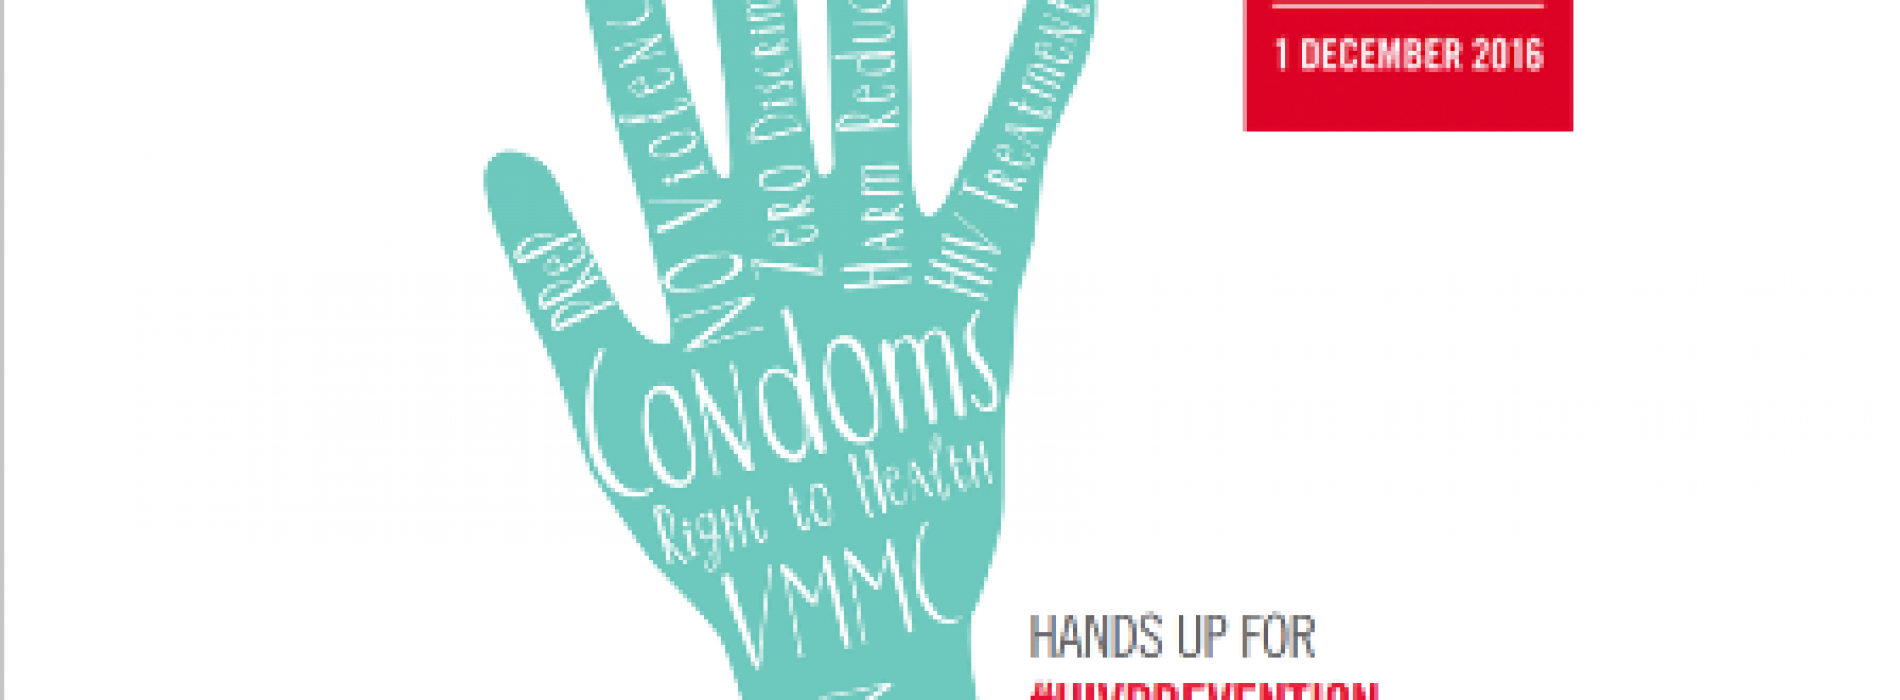 WORLD AIDS DAY: WHO issues new guidance on HIV self-testing